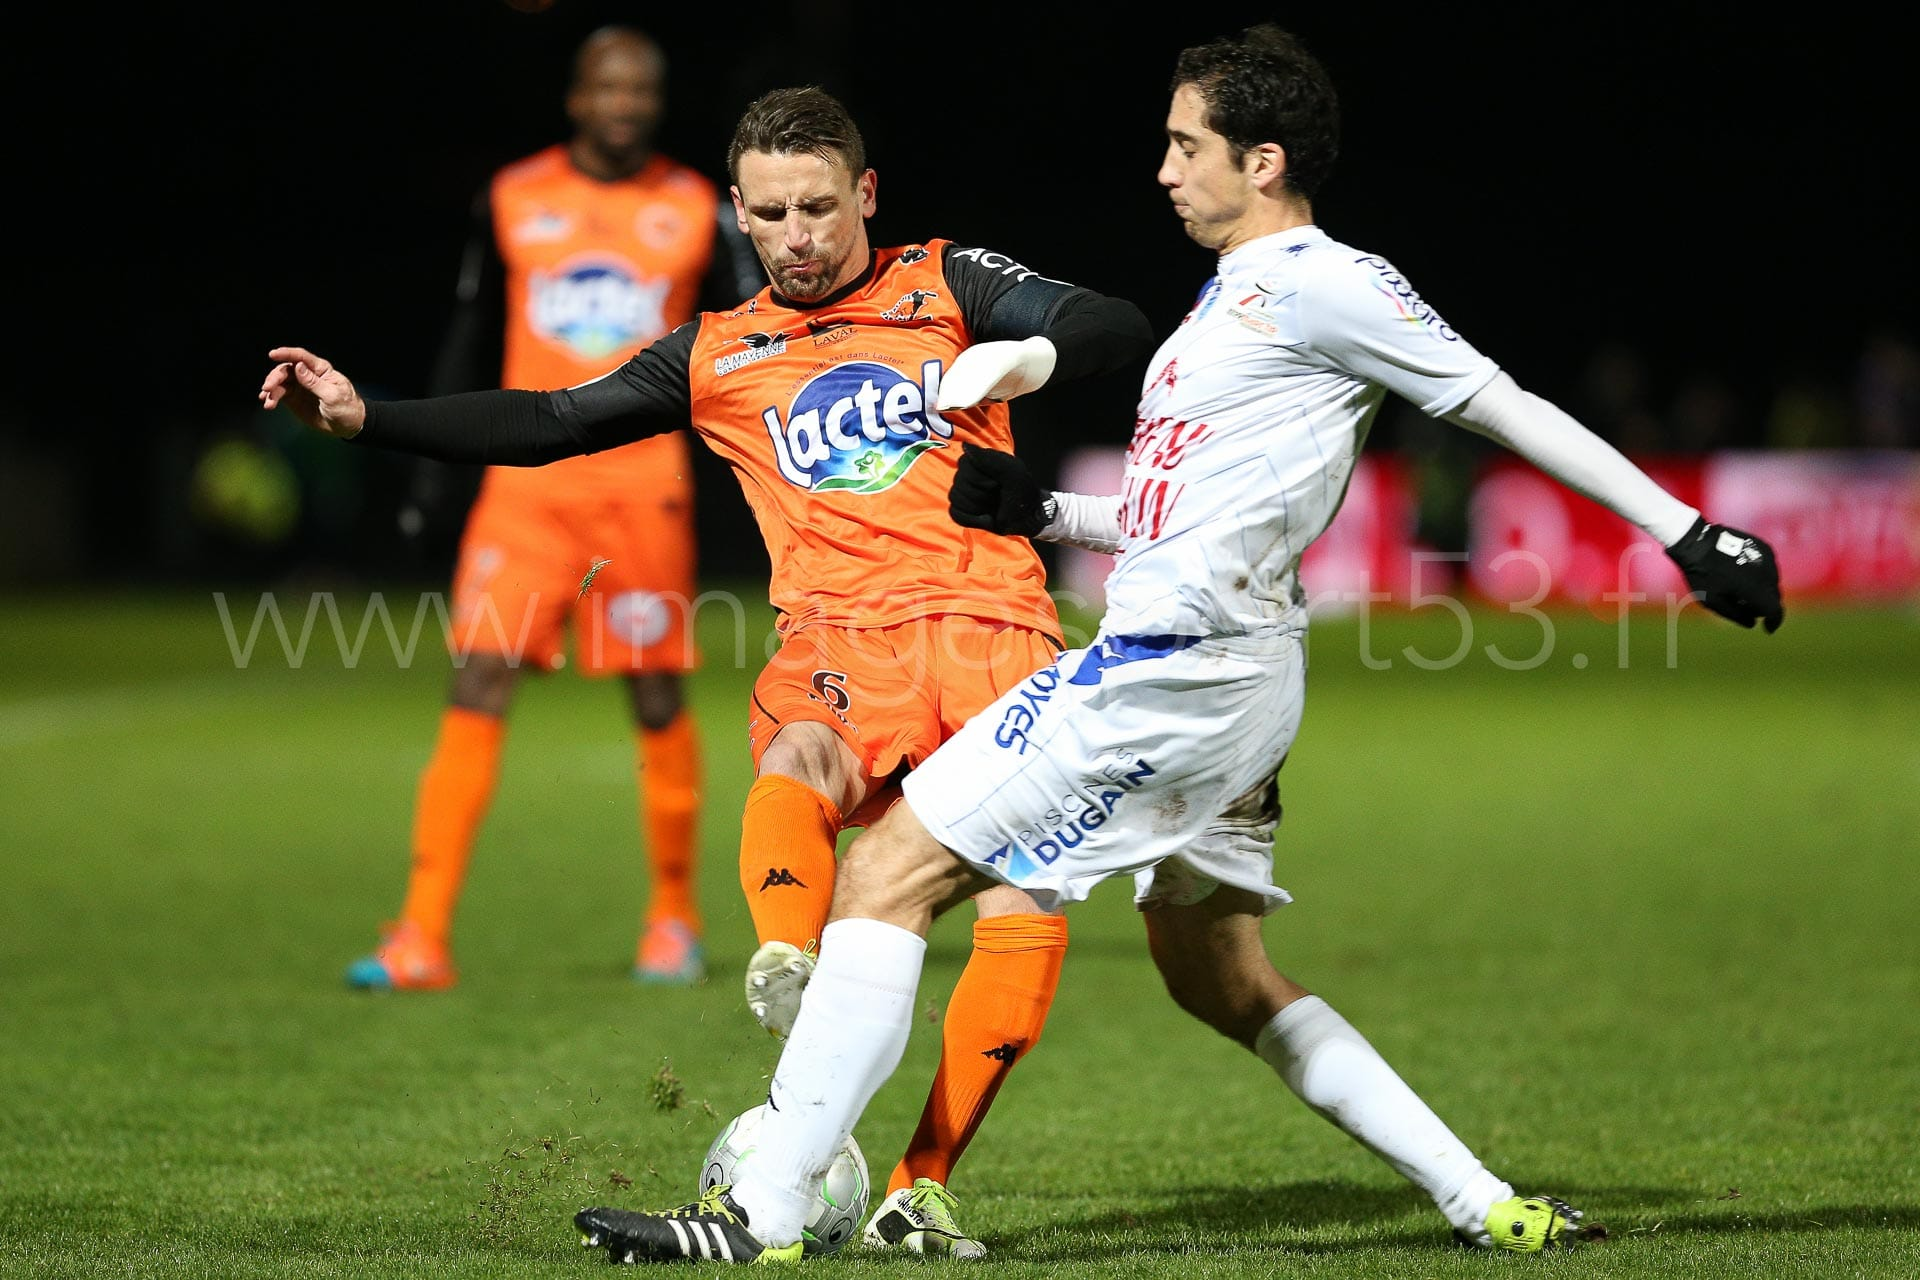 NG-Ligue2-1415-J22-Laval-Troyes_1